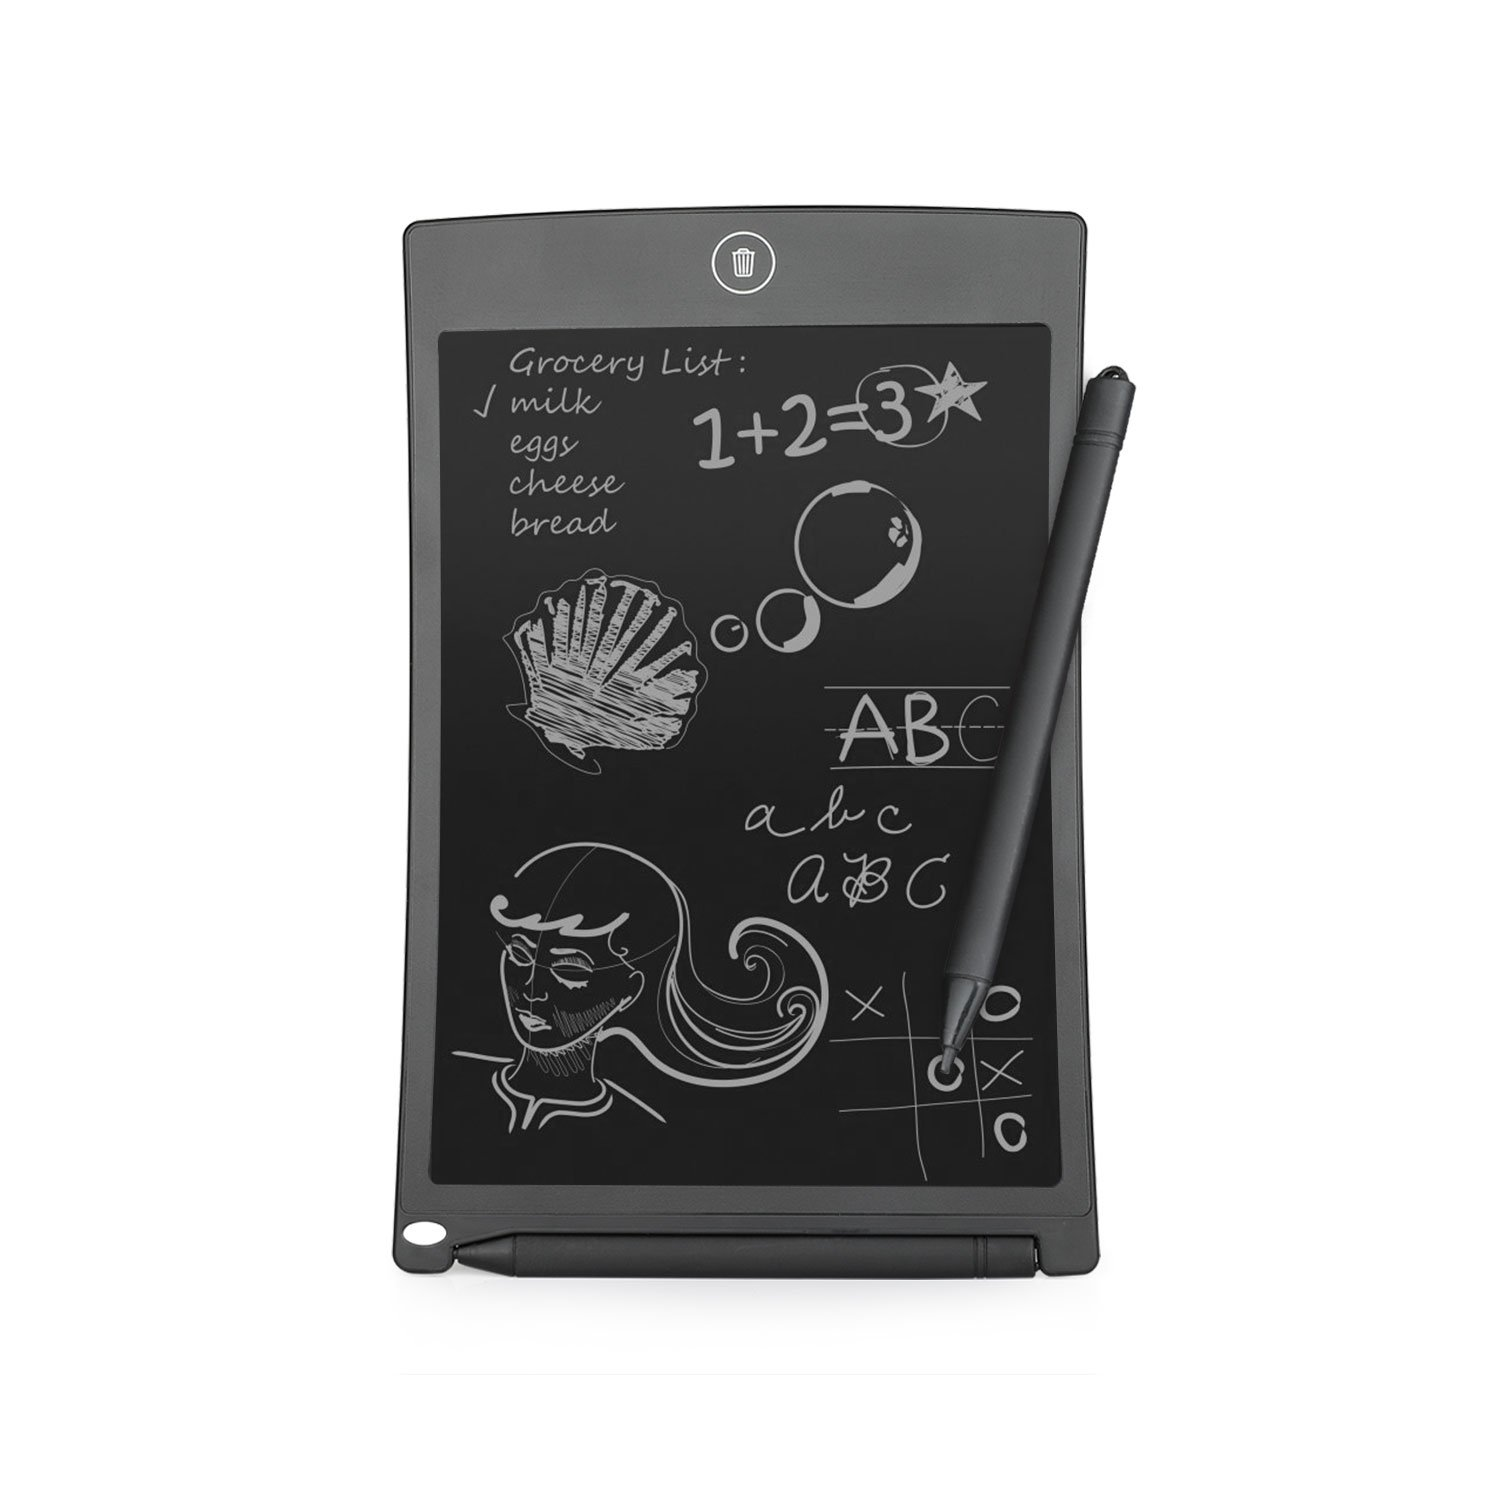 IVSO 8.5-inch LCD Writing Tablet Rewritten Digital Drawing and Writing Paperless Notepad with Easy Magic Eraser - Great for Adults, Kids and Students at Home, School or Office (Black)